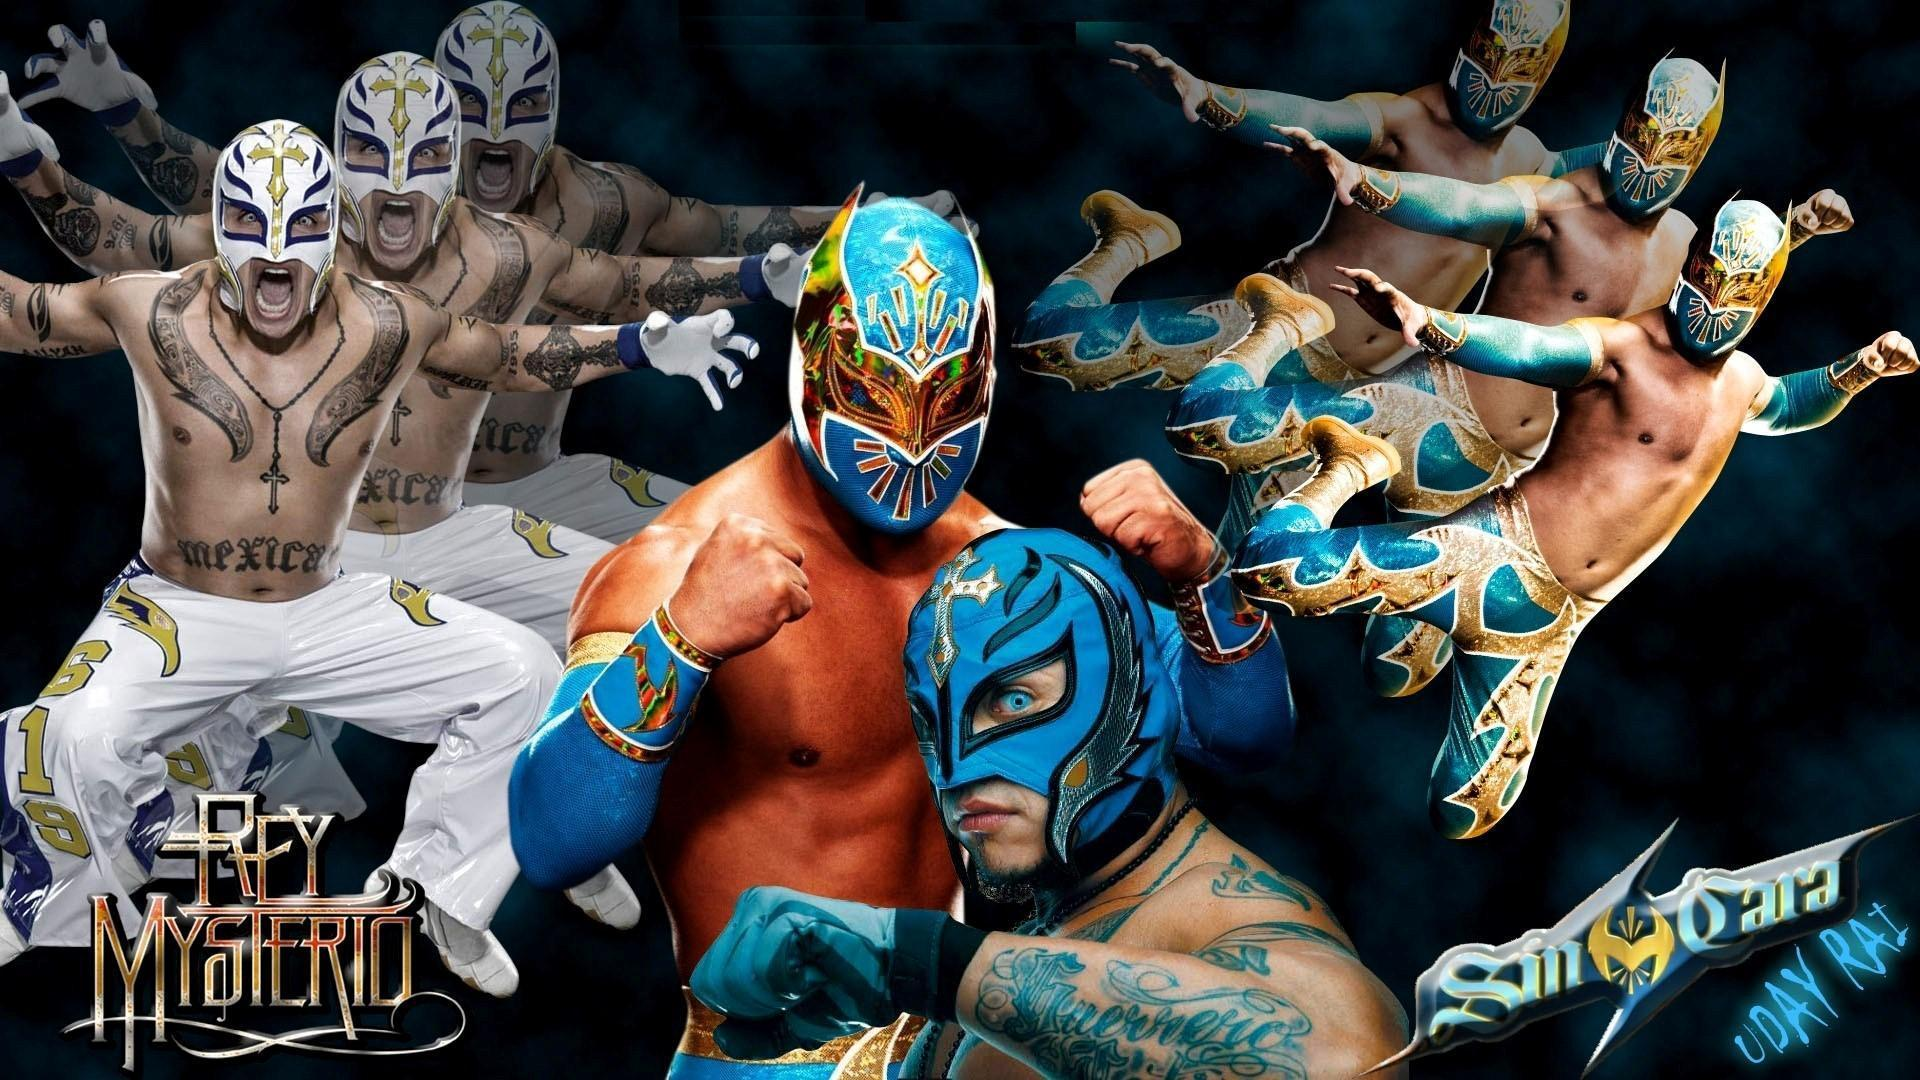 1920x1080 Rey Mysterio 2015 Full HD Wallpapers